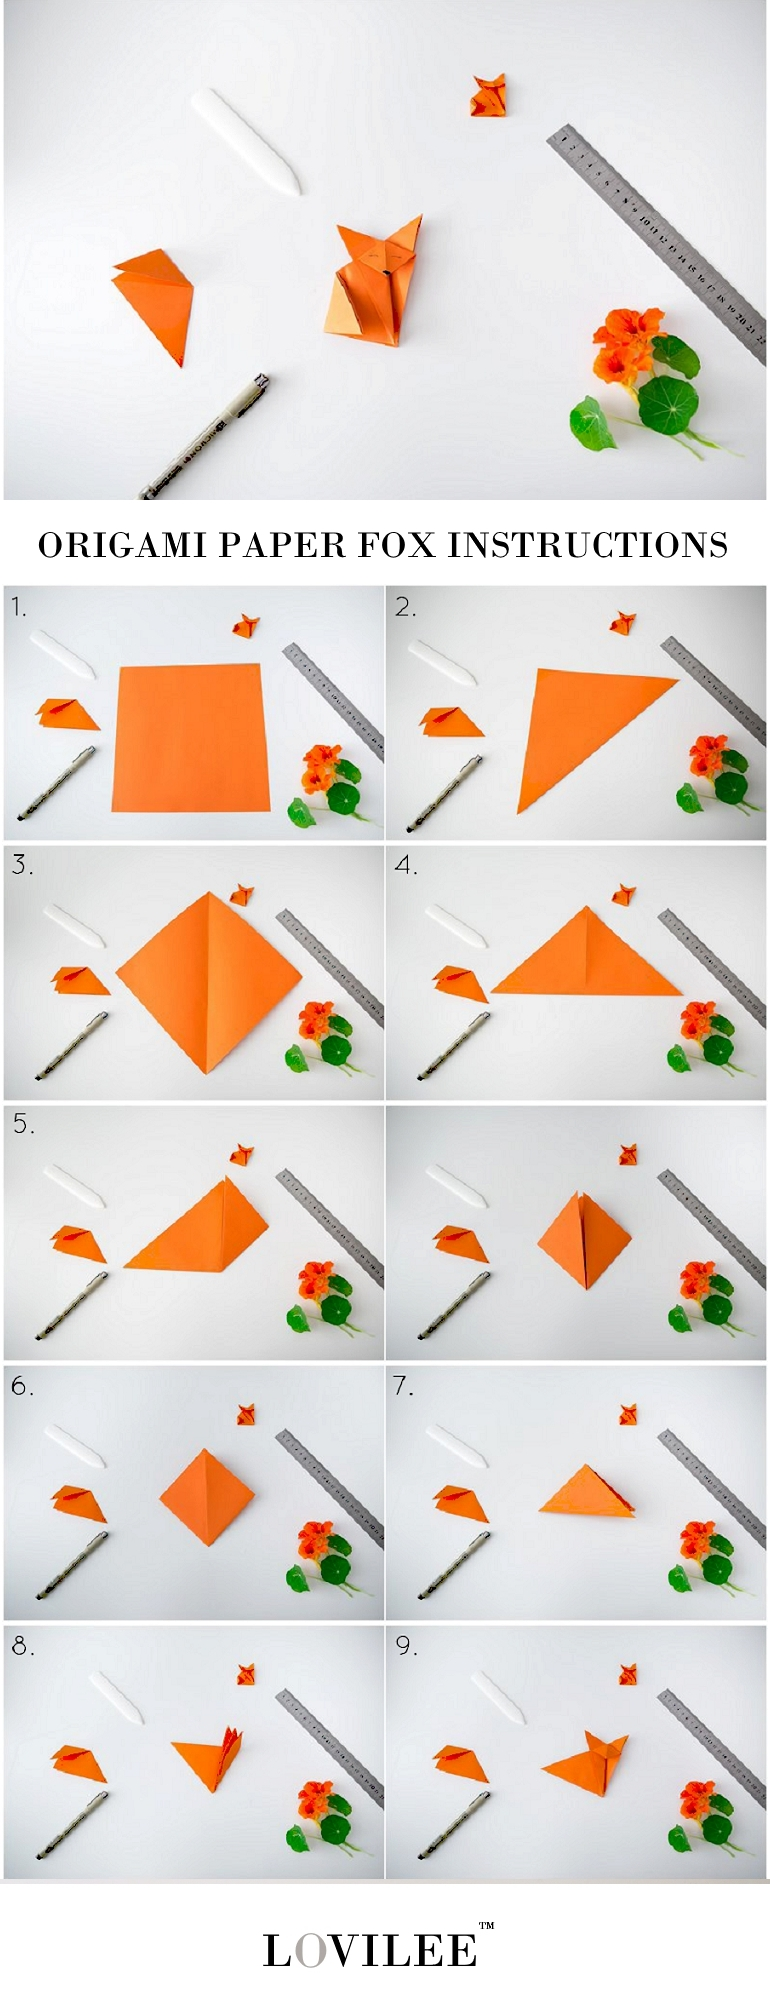 Origami paper fox folding instructions lovilee blog origami paper fox folding instructions jeuxipadfo Gallery